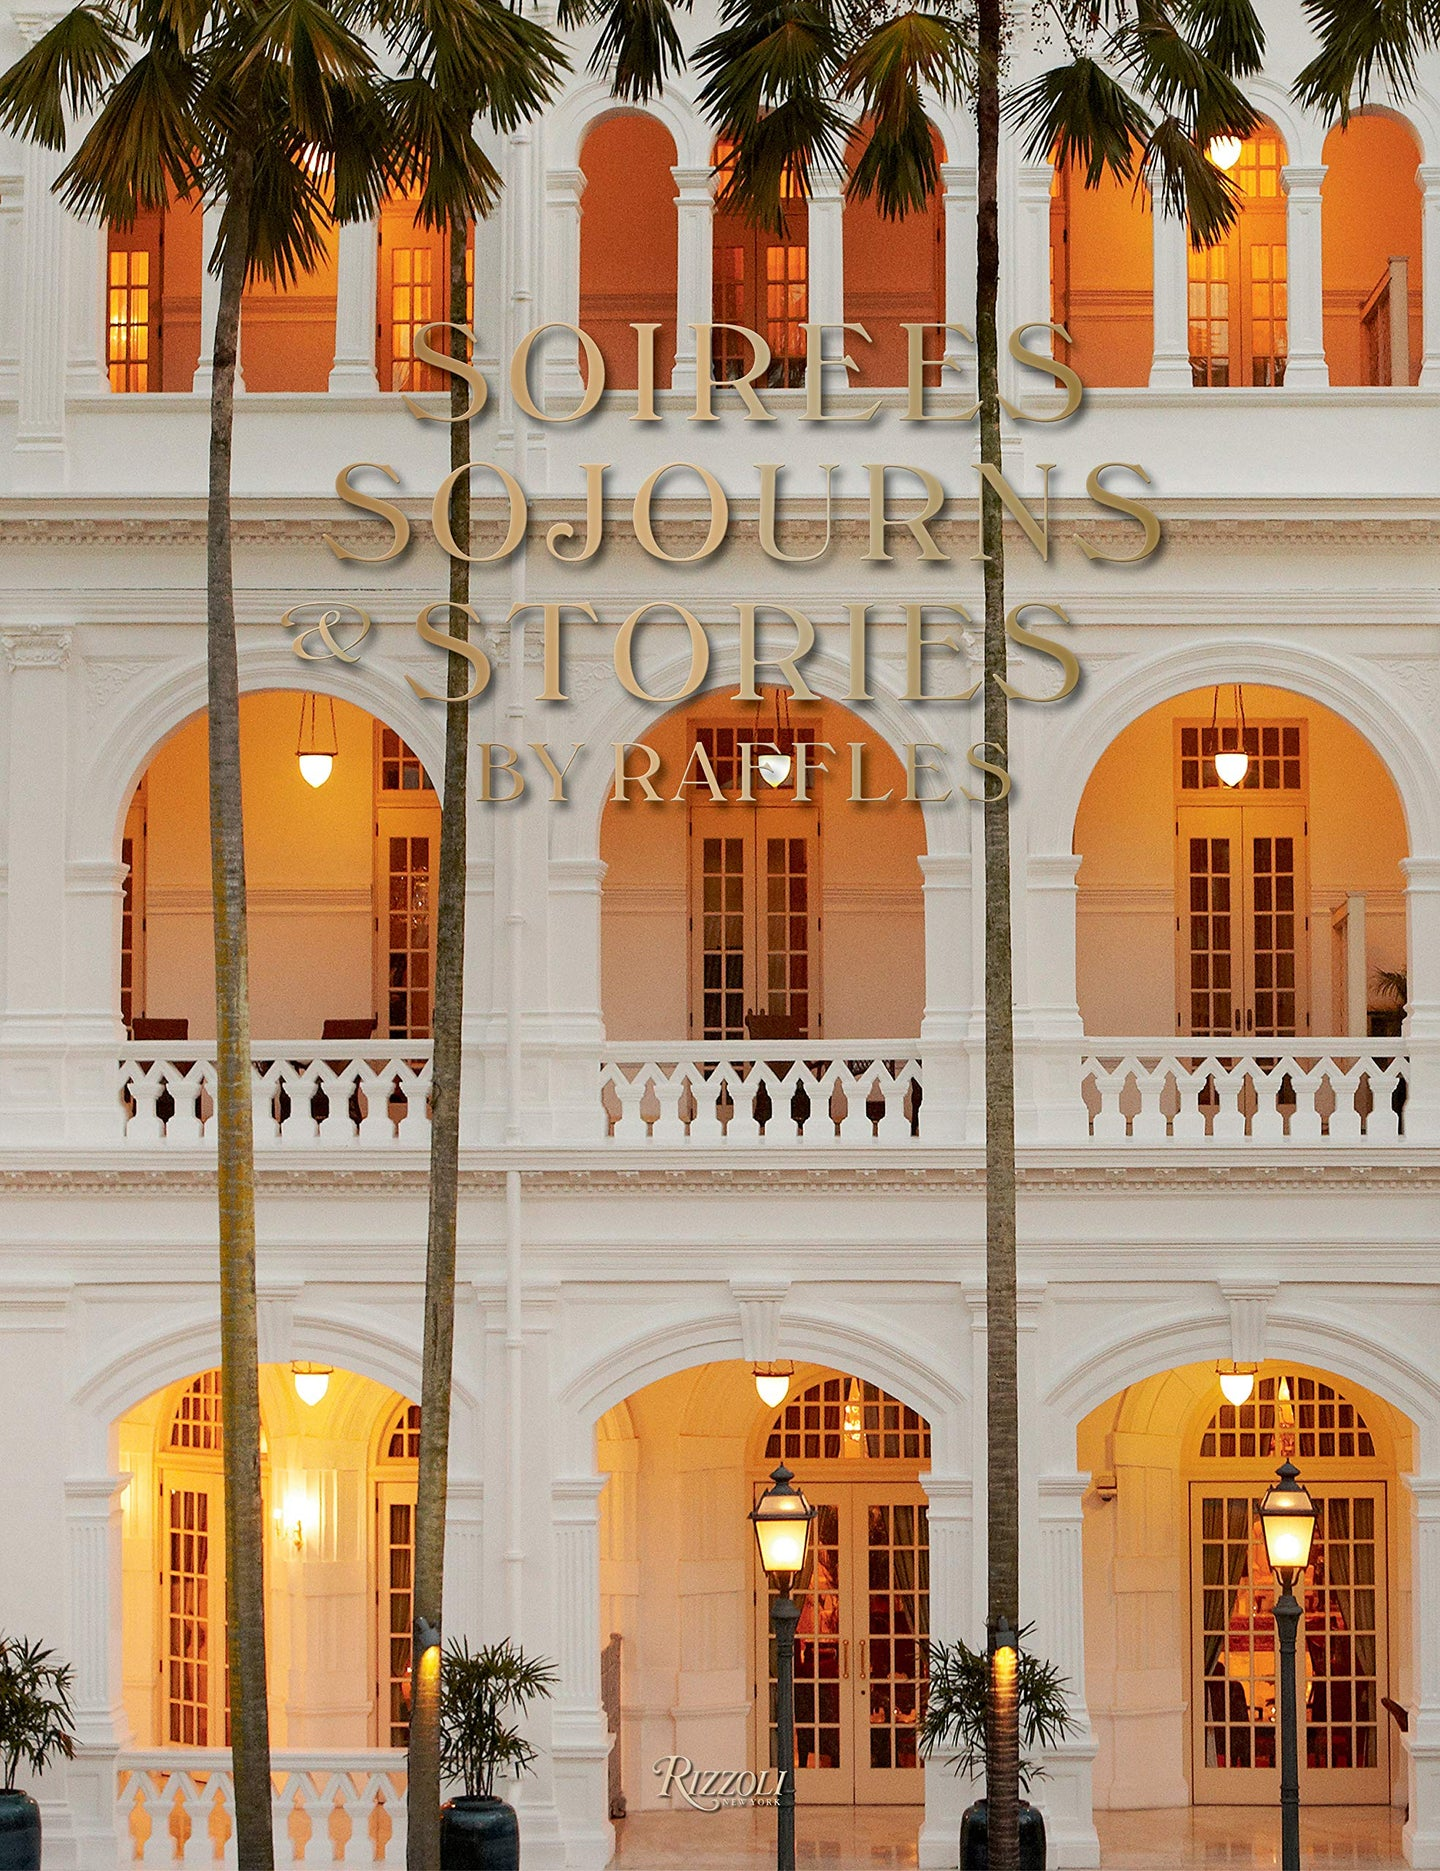 Soirees, Sojourns, and Stories: By Raffle